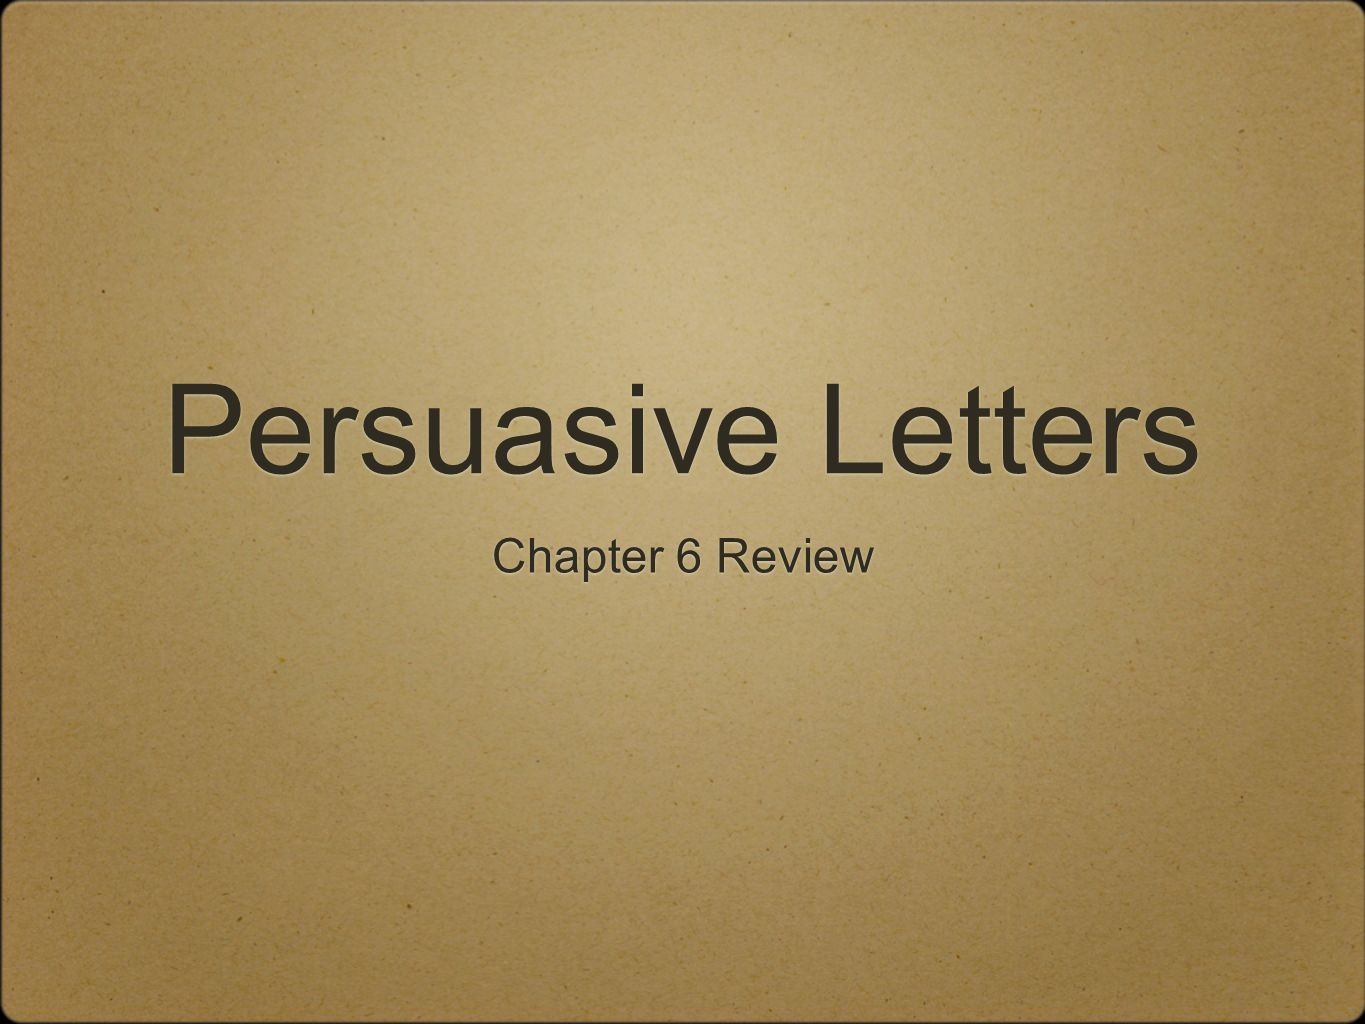 Persuasive Letters Chapter 6 Review